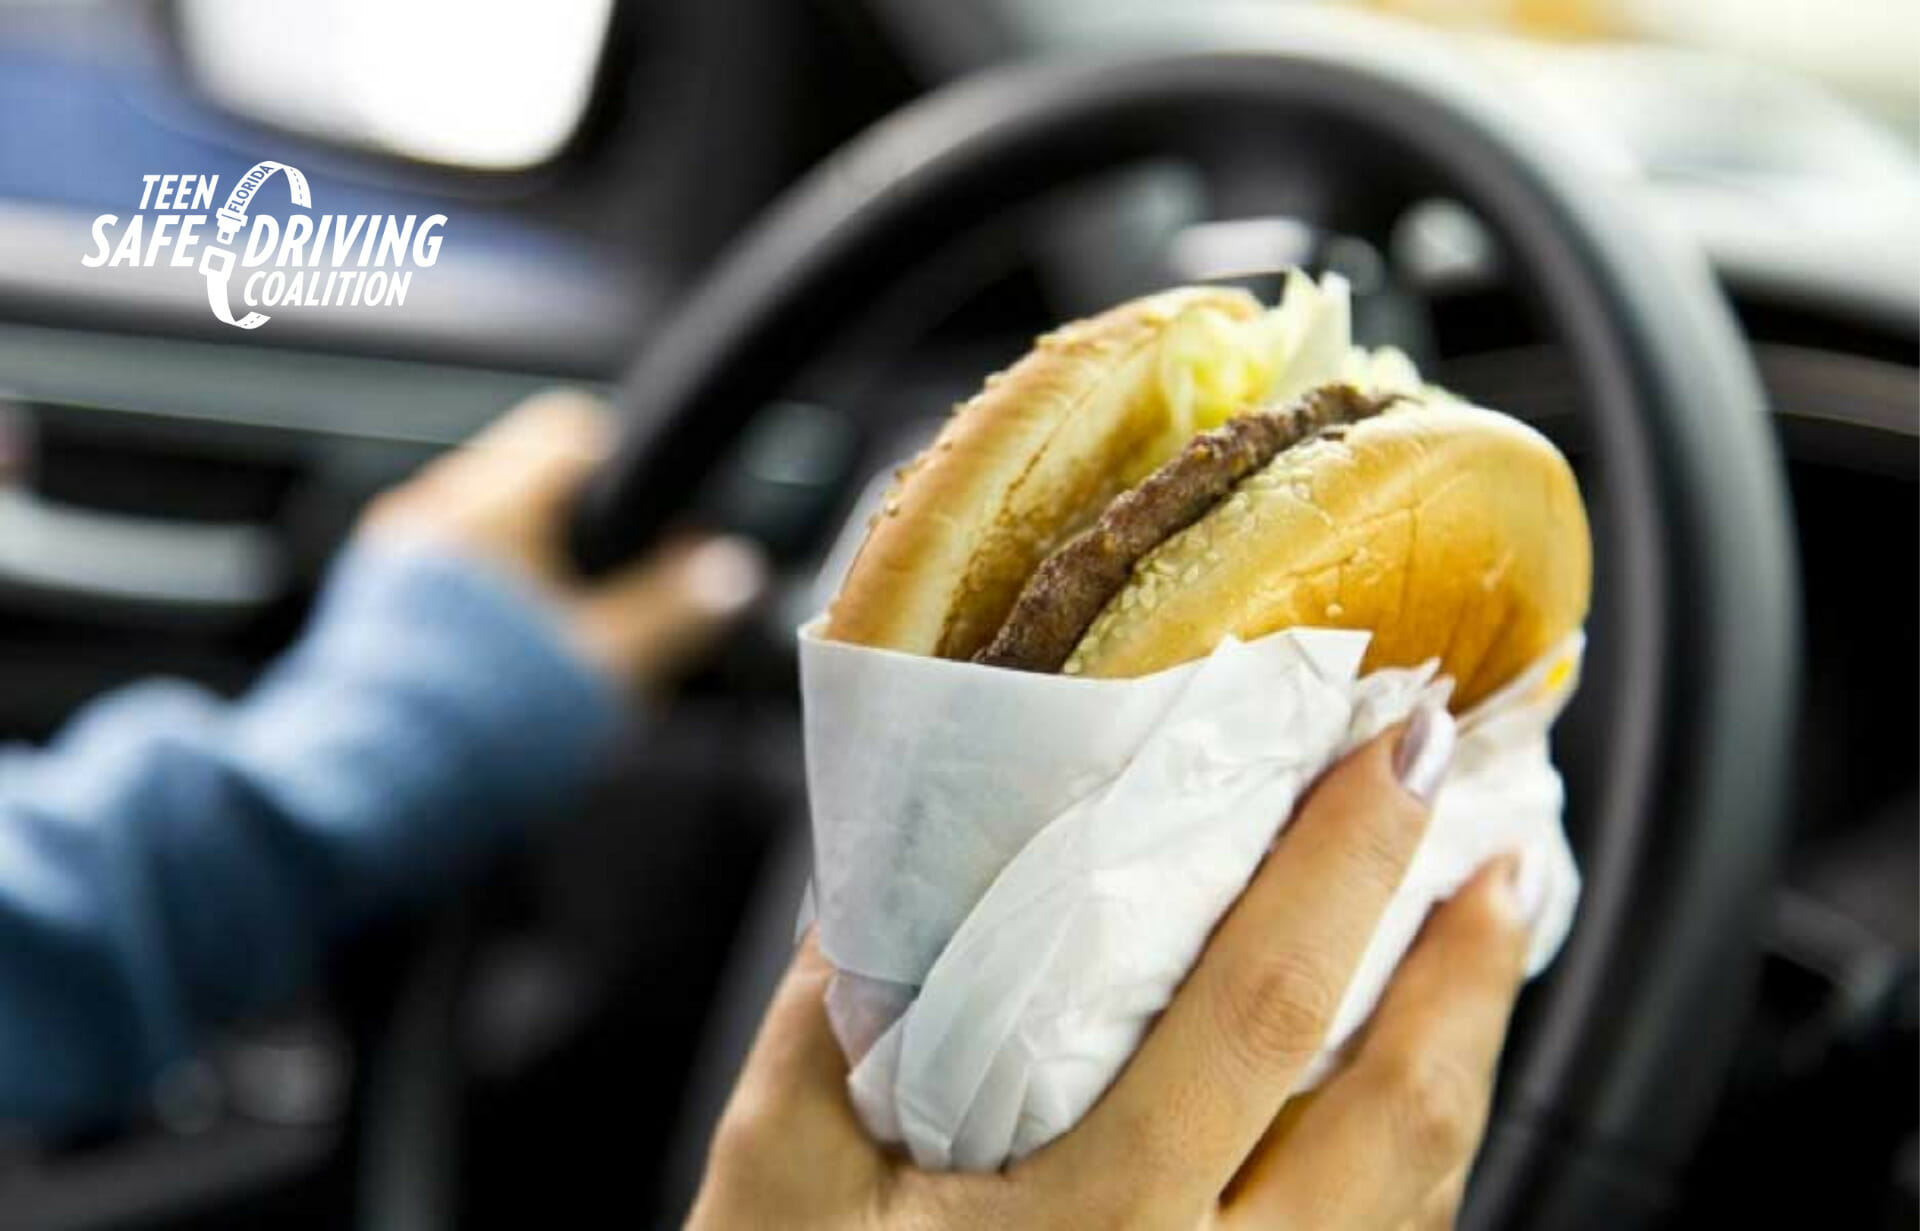 9 Distractions Your Teen Driver Should Know About